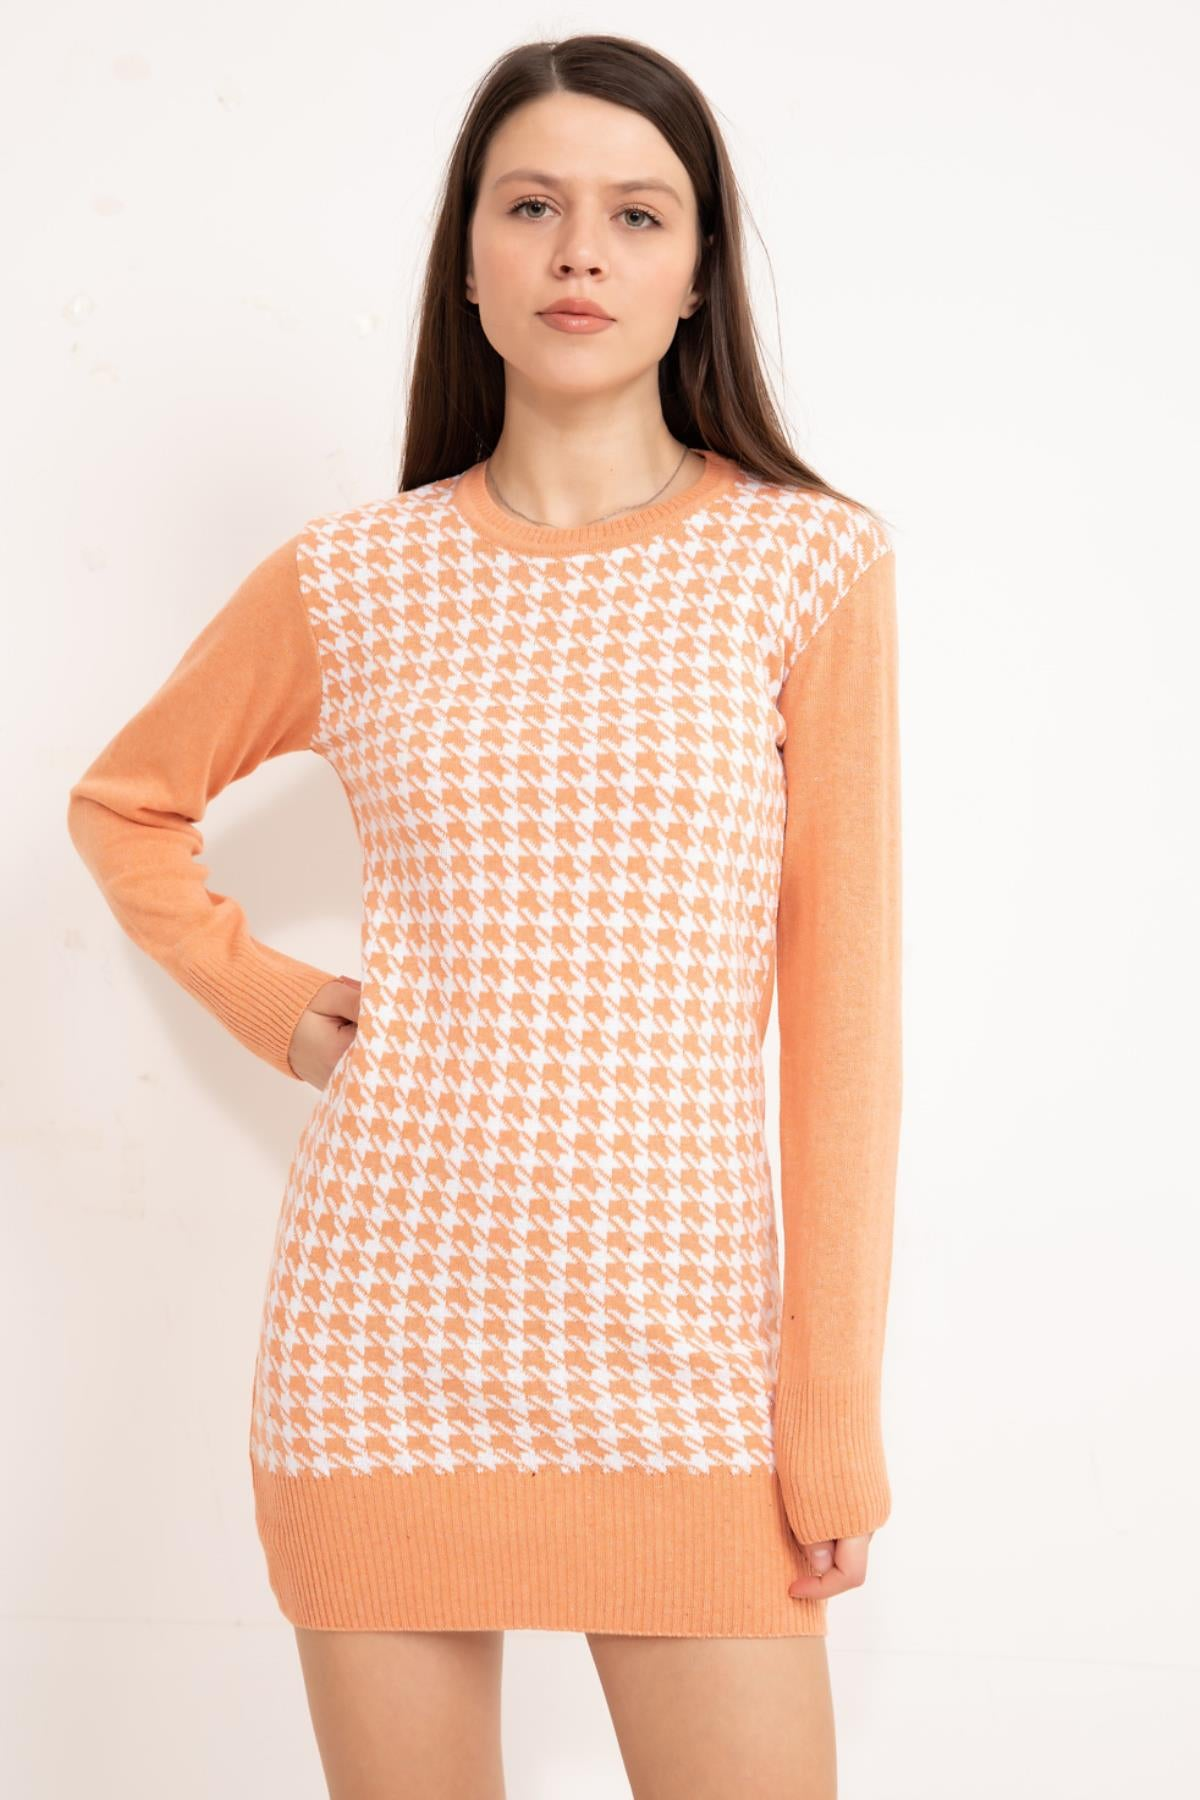 Somon Front patterned knitwear tunic.